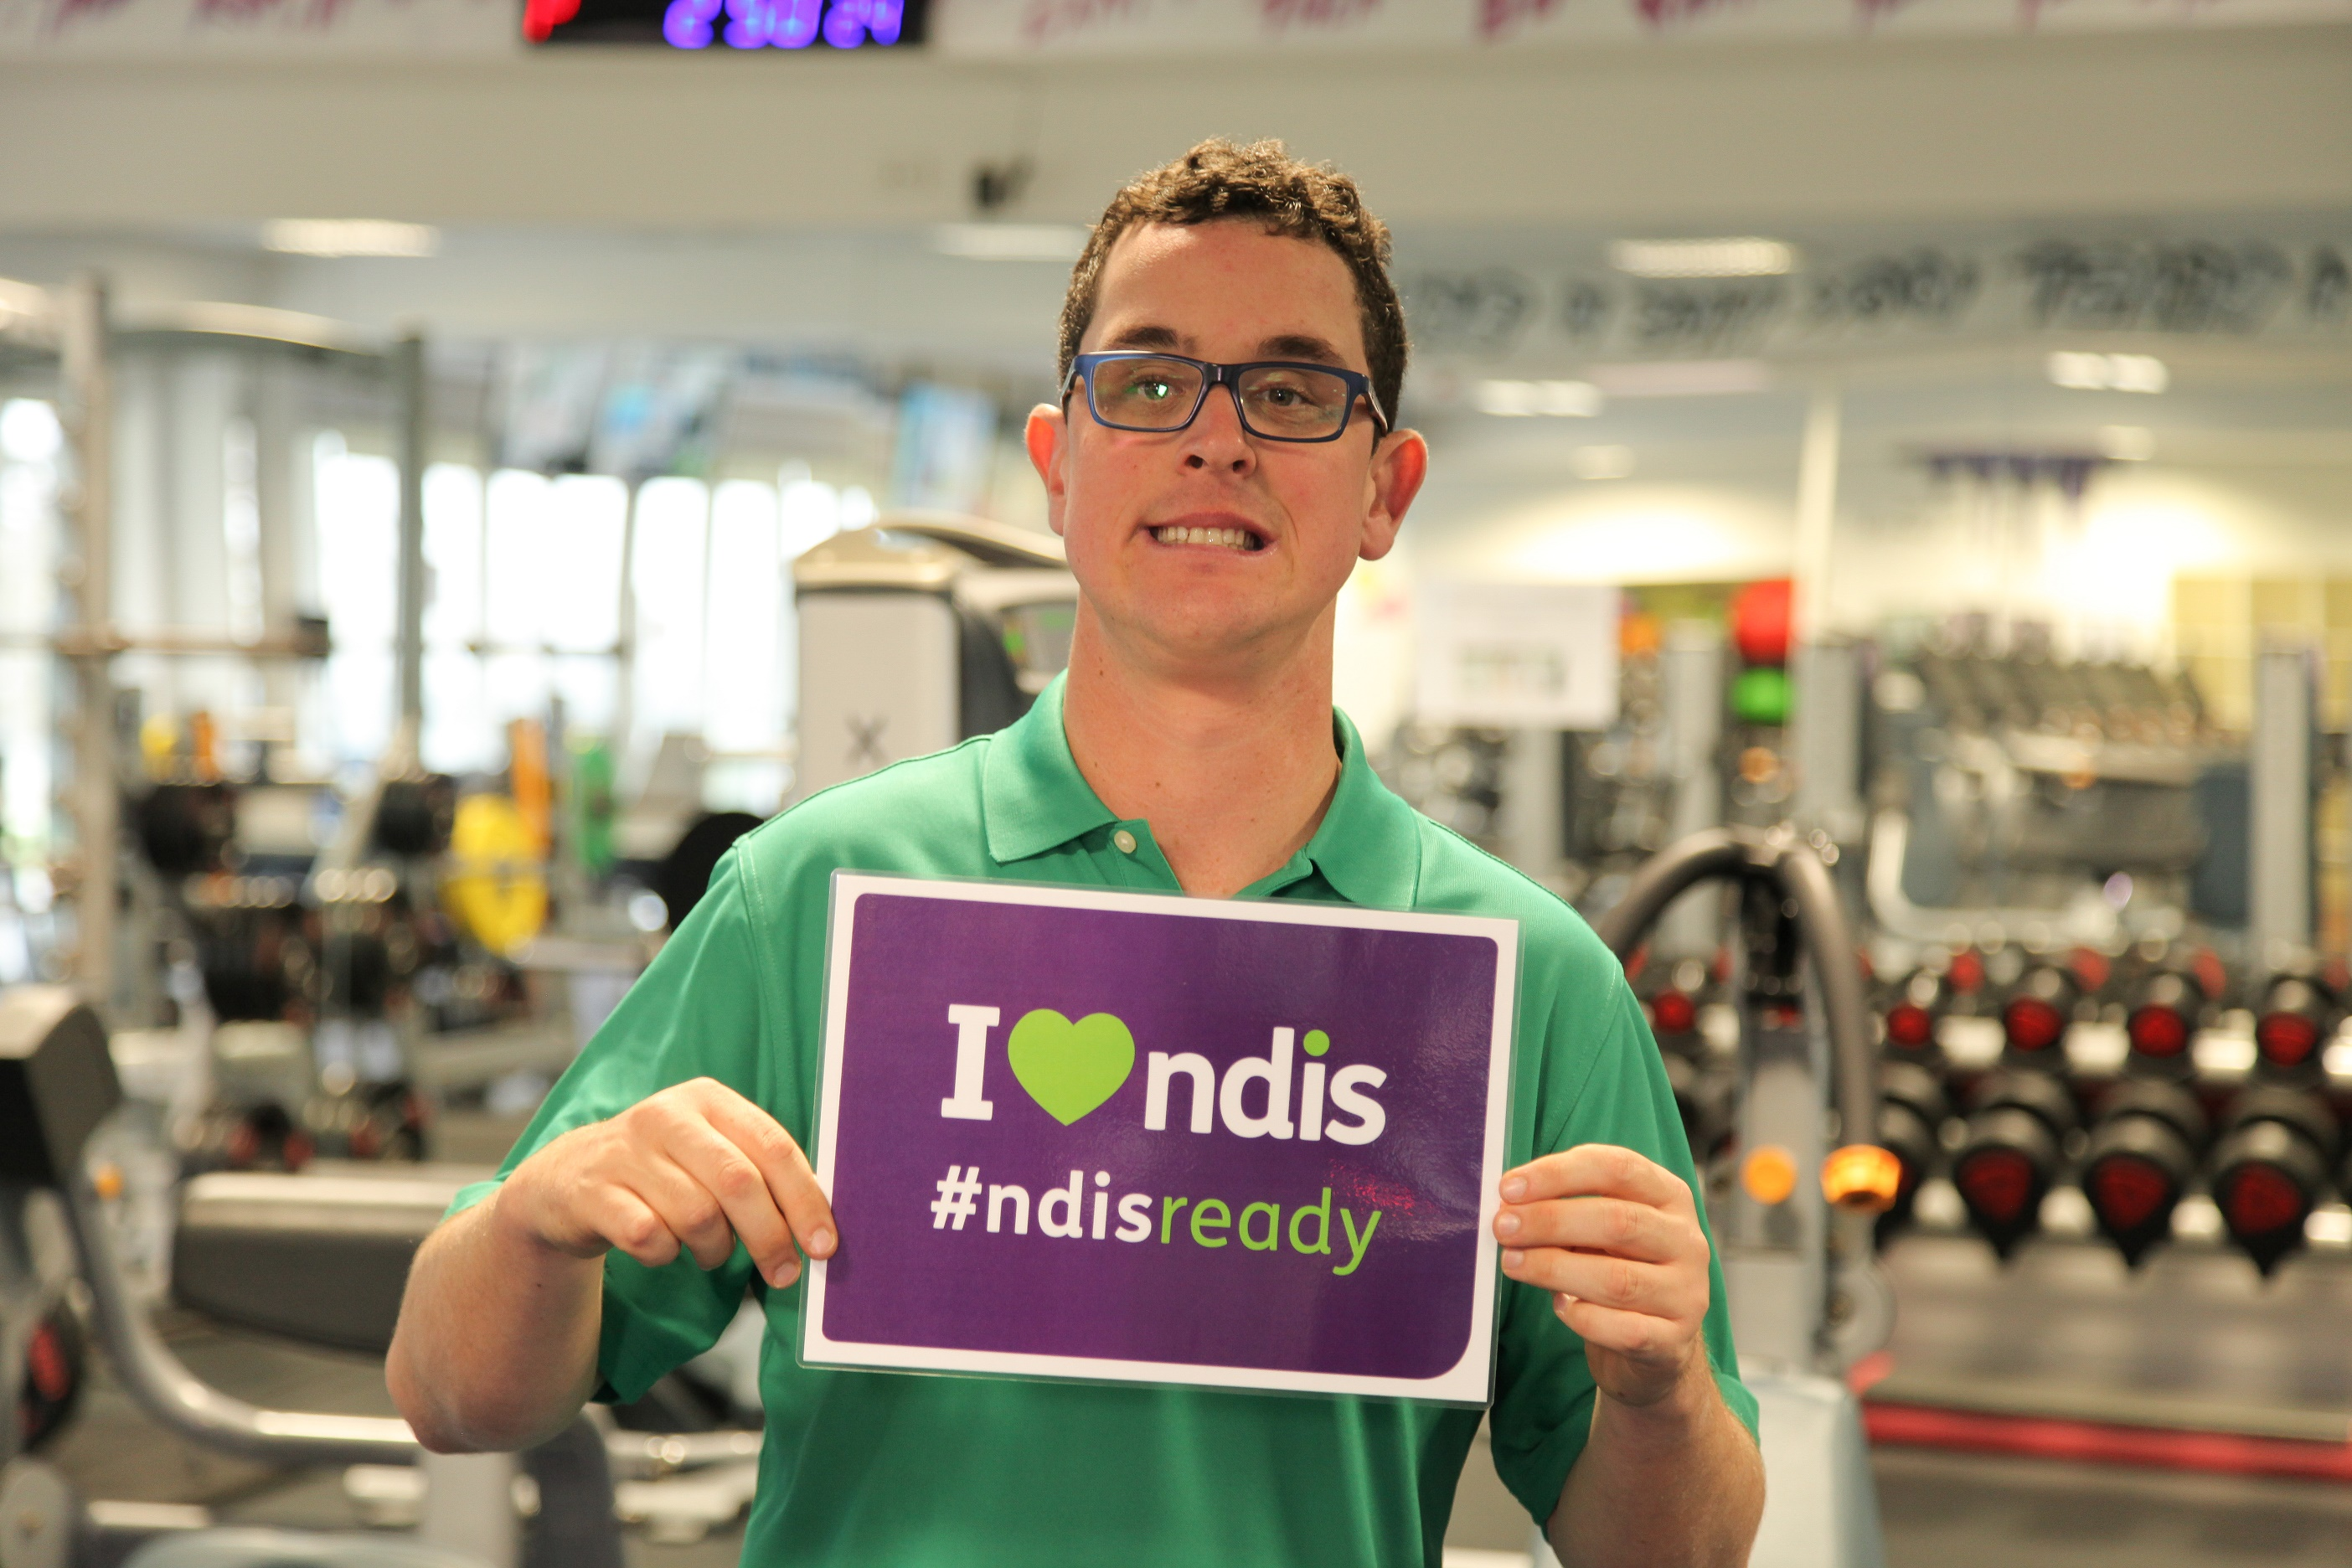 Man holding up 'I love NDIS #NDISready' sign